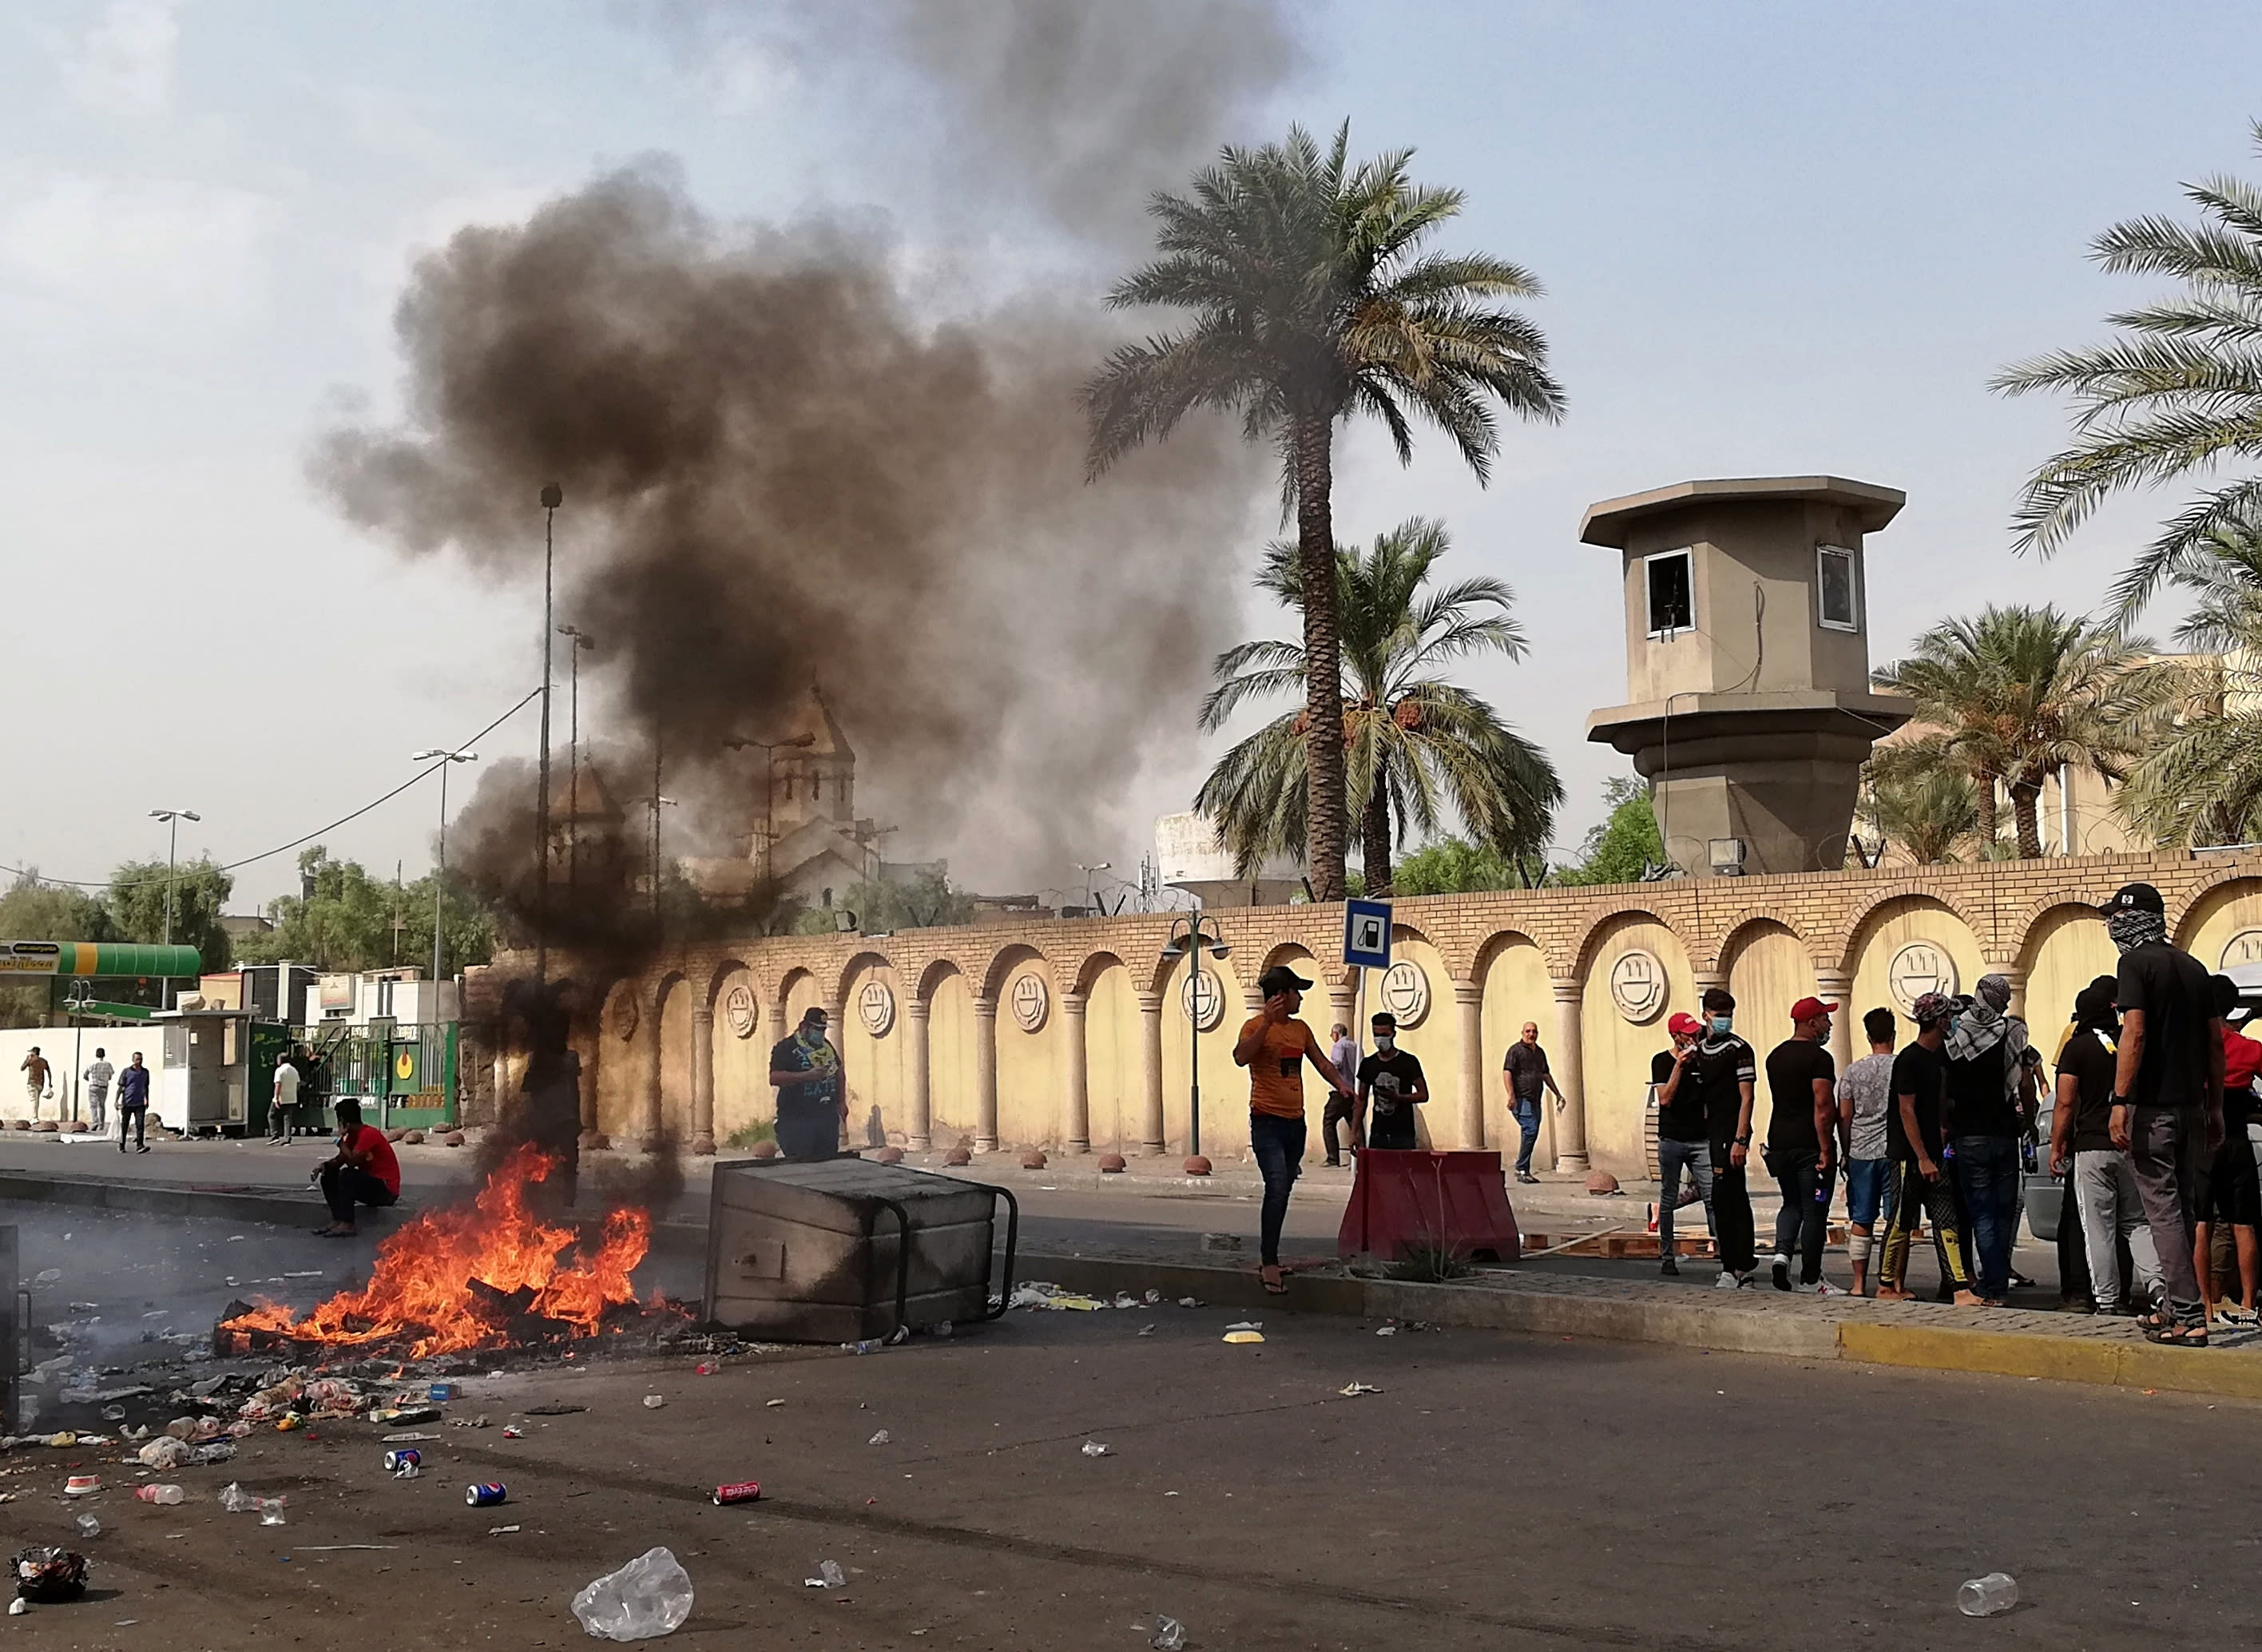 Anti-government protesters set a fire and block roads in front of the Ministry of Higher Education and Scientific Research in Baghdad, Iraq, Wednesday, Oct. 2, 2019. Security forces fired in the air and used tear gas Wednesday to disperse groups of demonstrators in Baghdad Wednesday, killing at least one and injuring six in renewed protests after violent confrontations between protesters and police a day earlier, officials said. (AP Photo/Hadi Mizban)